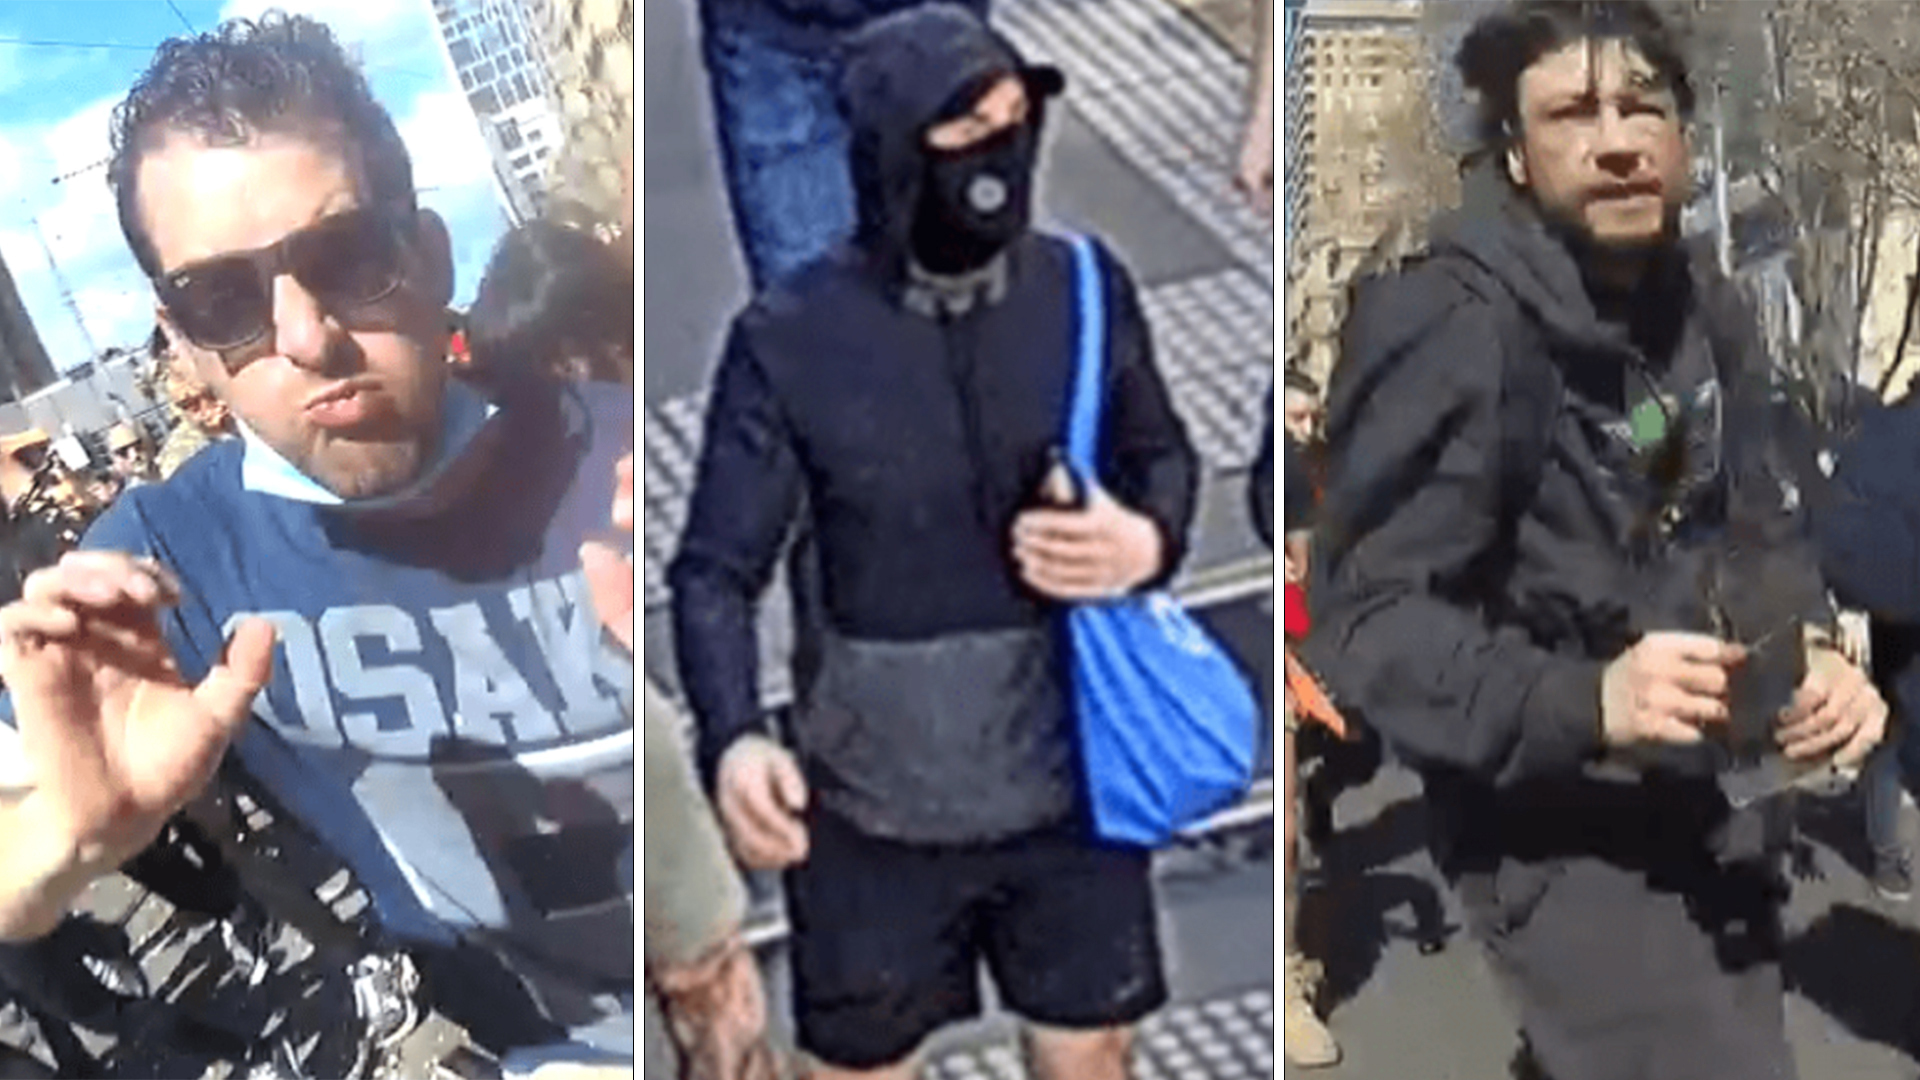 Police have released images of men they want to speak to after Melbourne's lockdown protests.